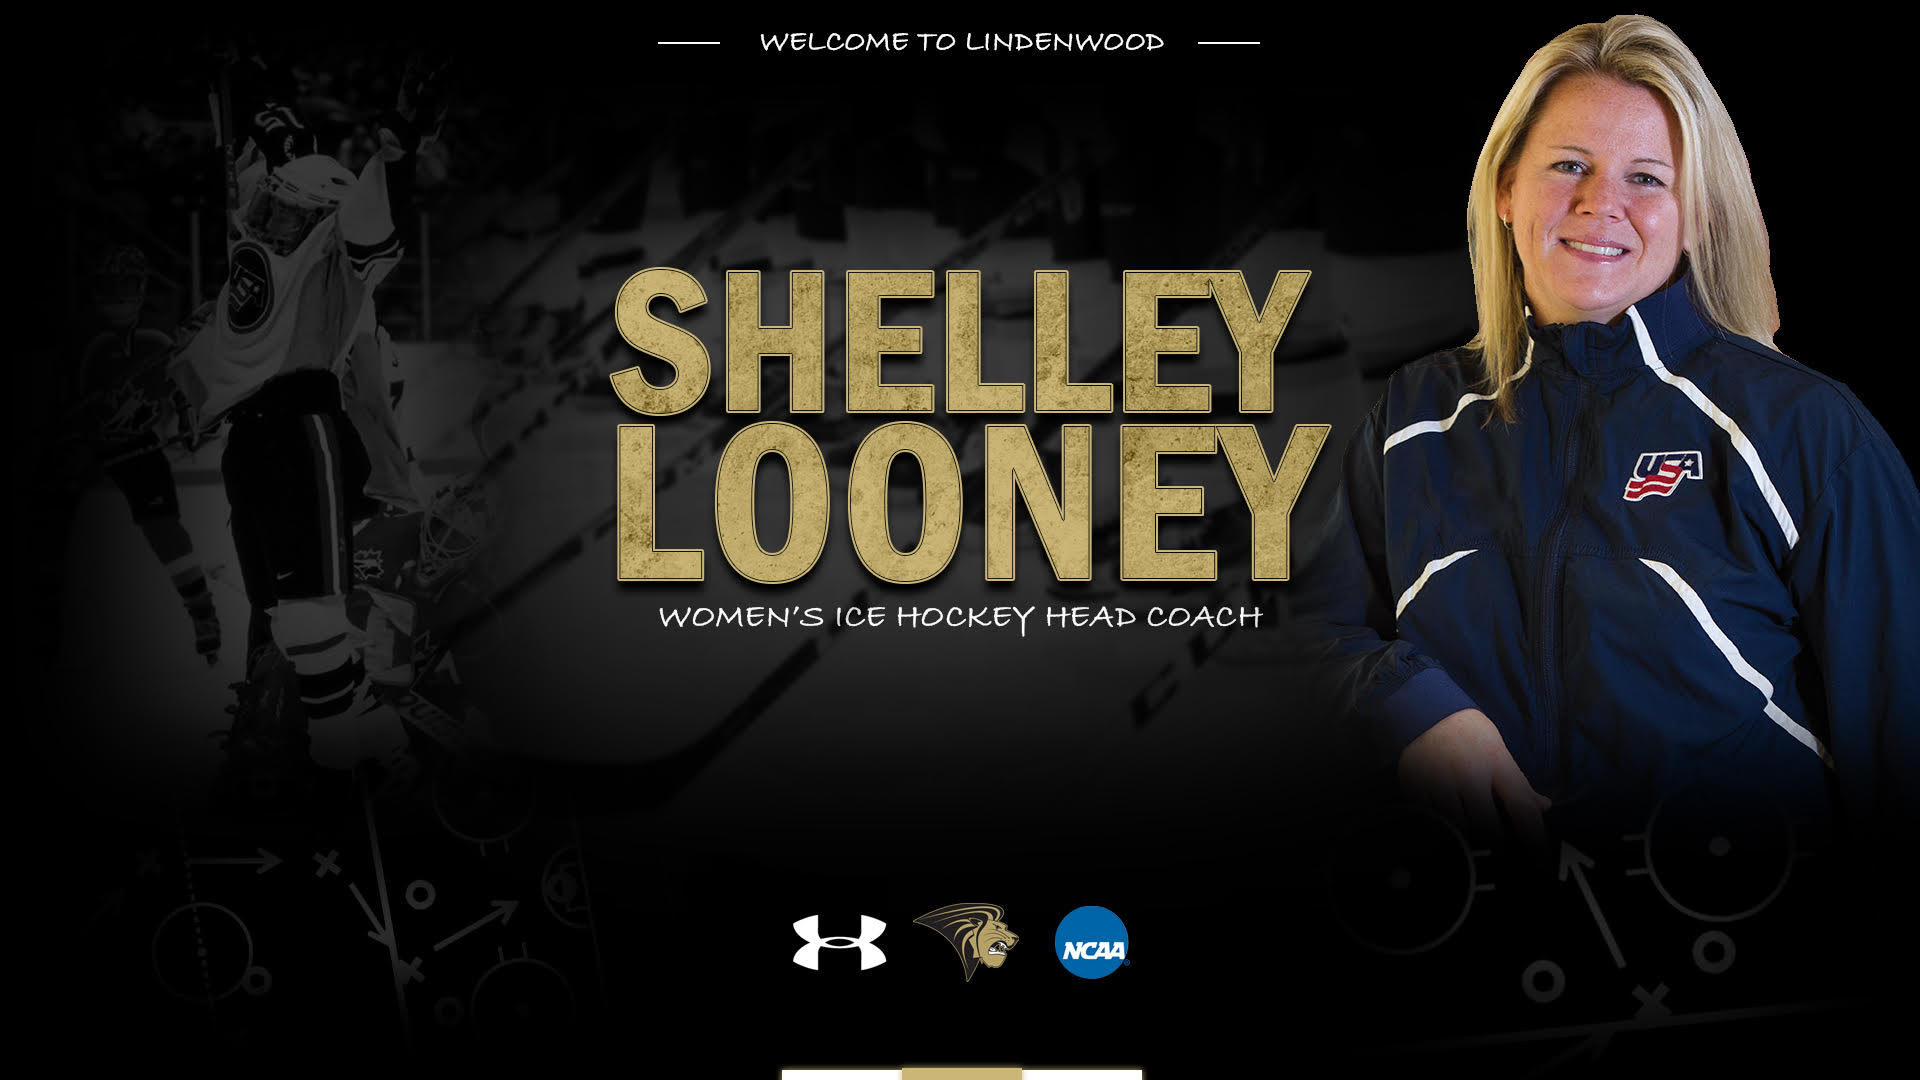 Click Here to read full article: Shelley Looney Named Head Coach of Women's Hockey at Lindenwood University